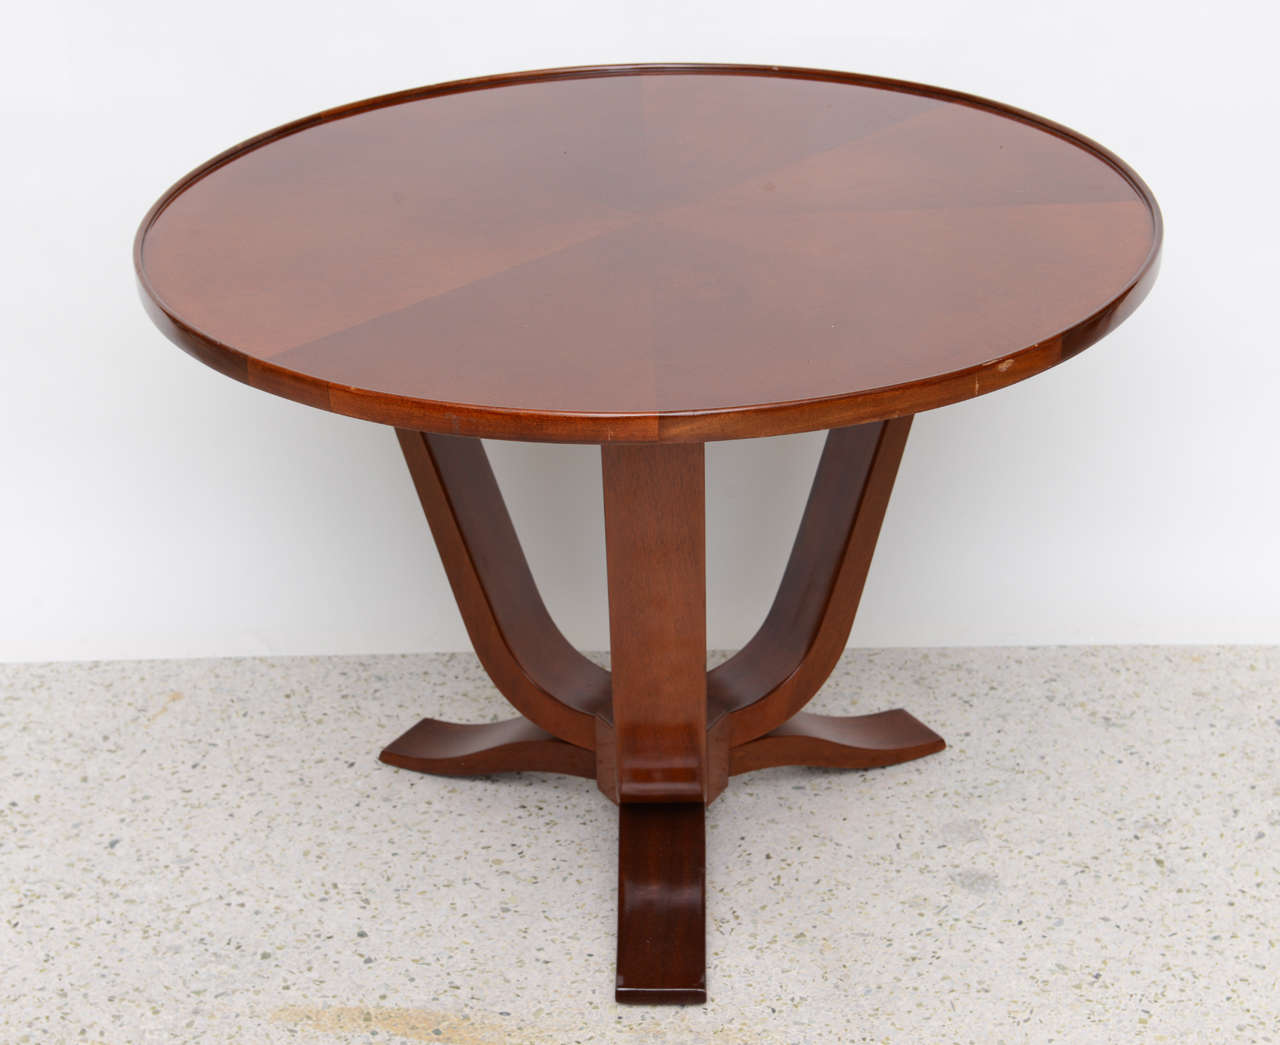 The radially veneered circular top above curved supports and legs joined by a central hexagonal support. Provenance Christie London.